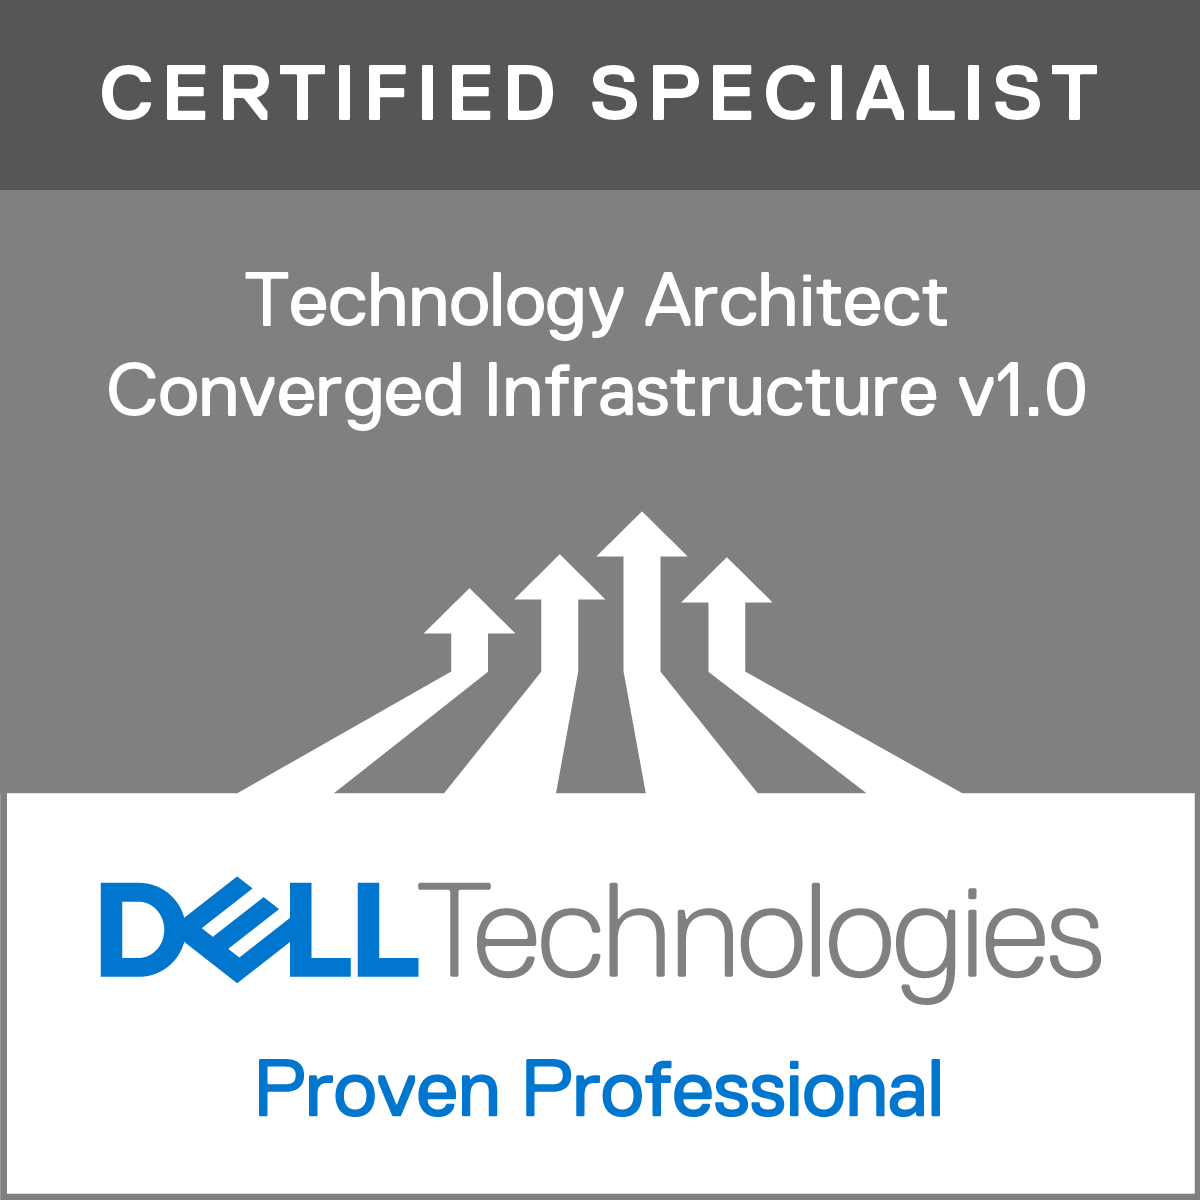 Specialist - Technology Architect, Converged Infrastructure Version 1.0